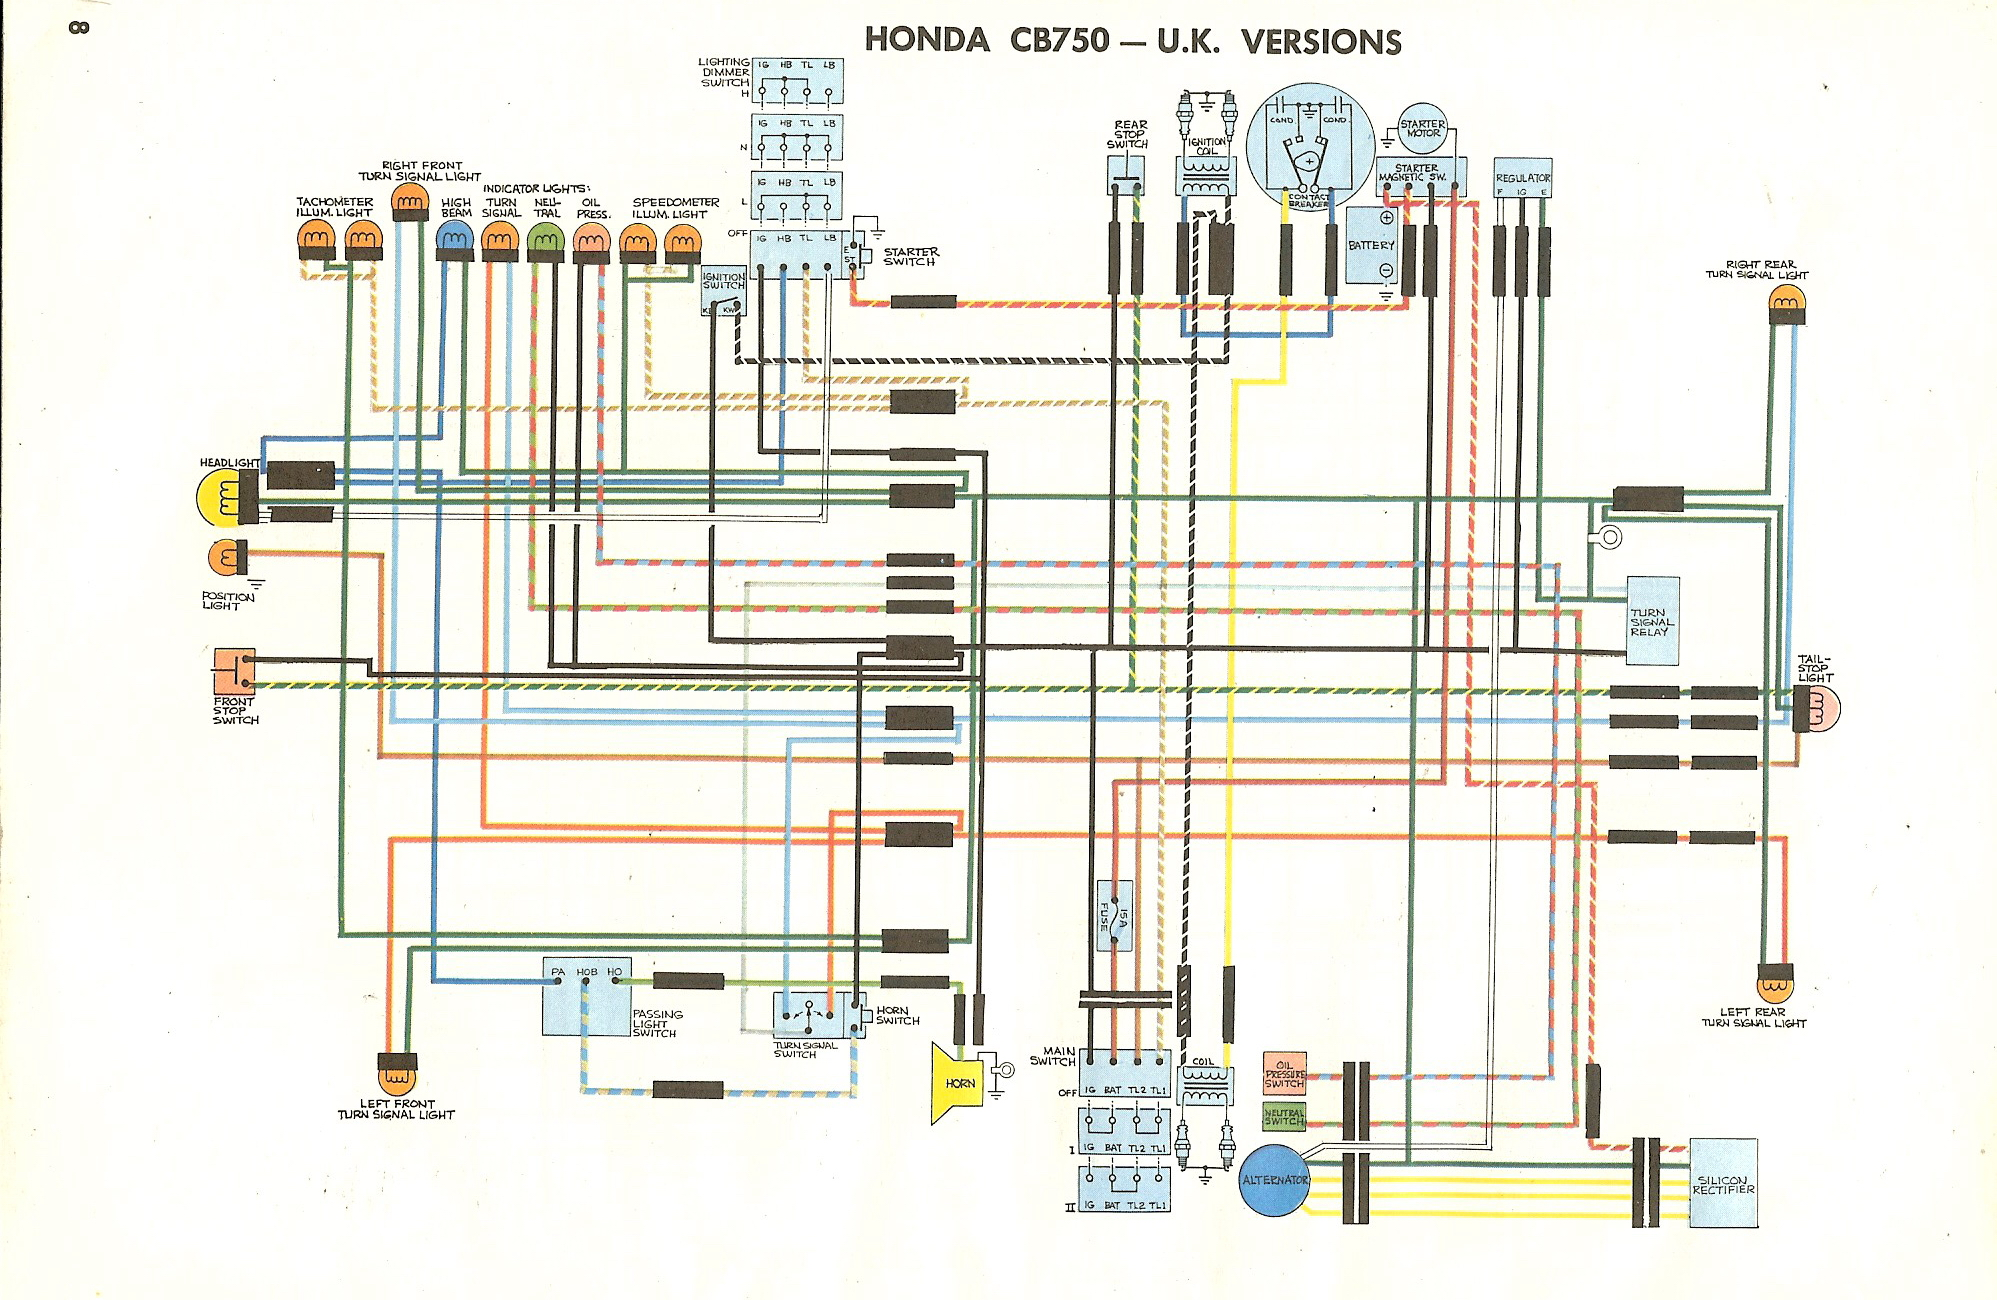 1978 Honda Cl100 Wiring Diagram Data Sl70 Cb750k Rh Manuals Sohc4 Net St90